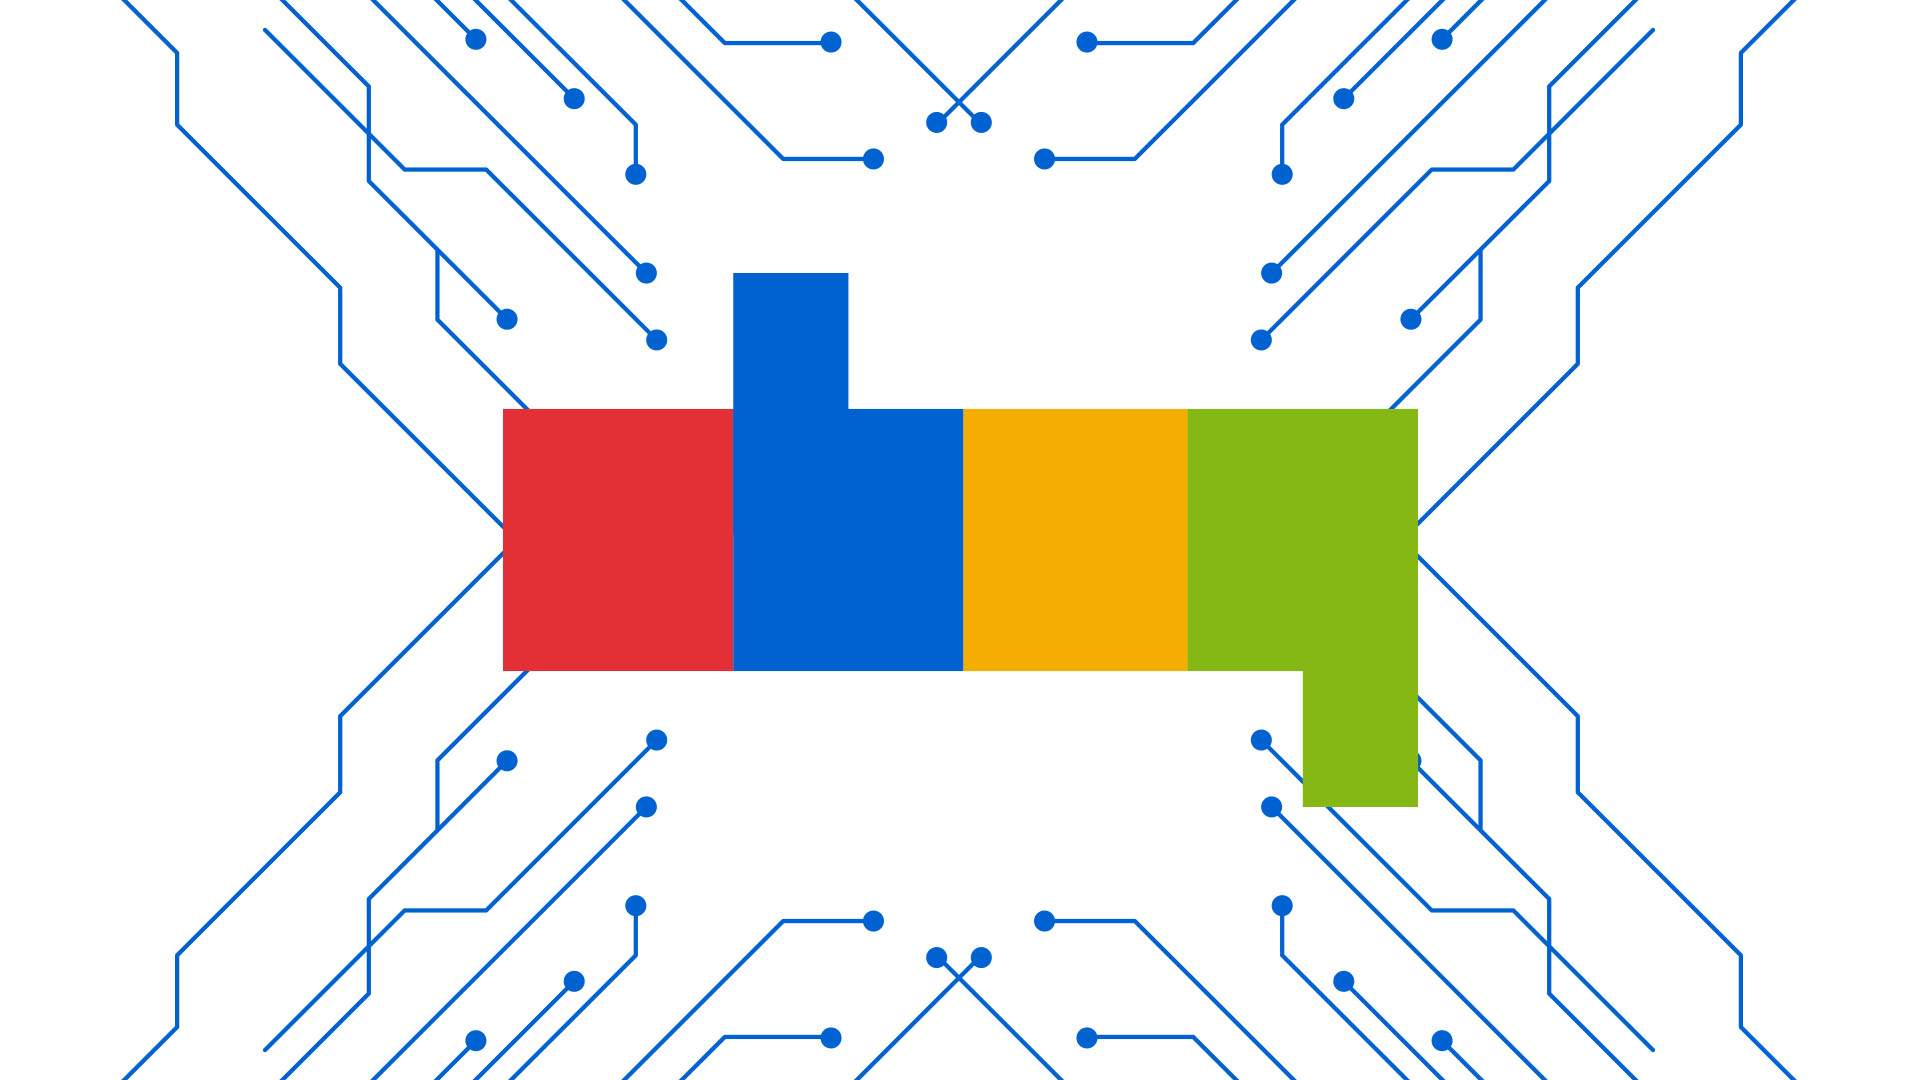 This is a stylized version of the eBay logo to show that it's ready to get into crypto, supposedly.